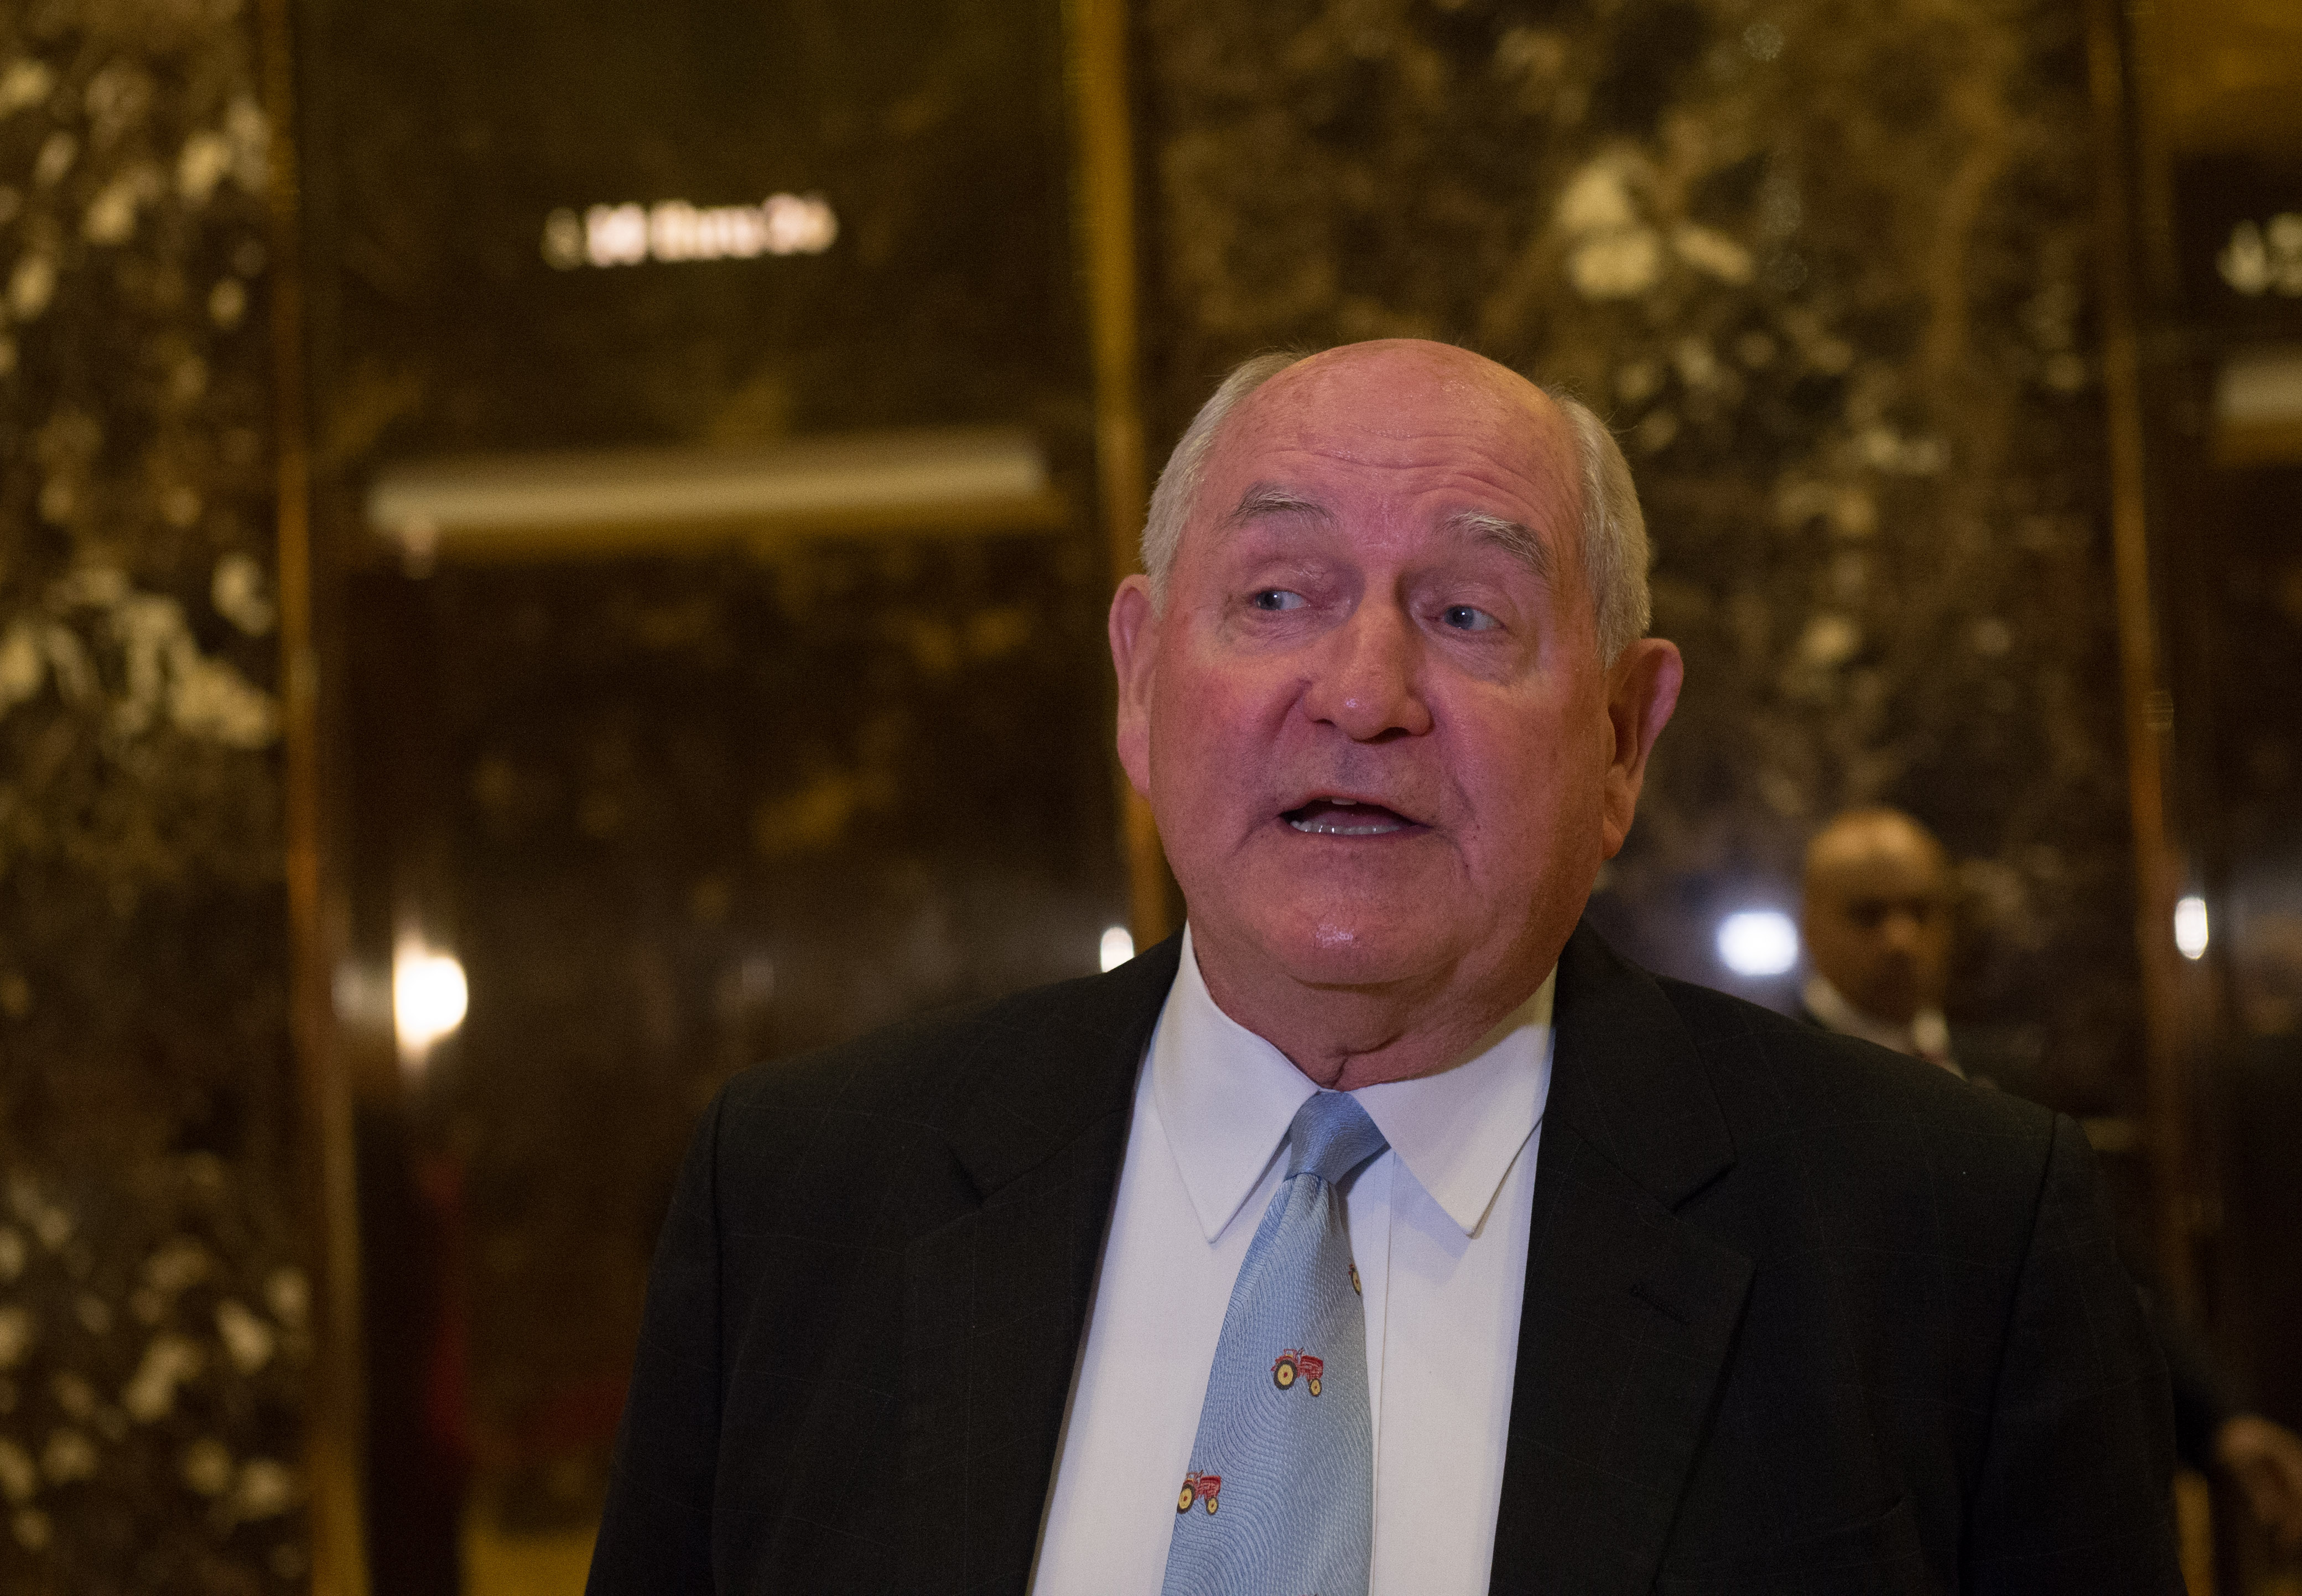 Former Georgia governor Sonny Perdue in the lobby of Trump Tower, in New York City on Nov. 30, 2016.